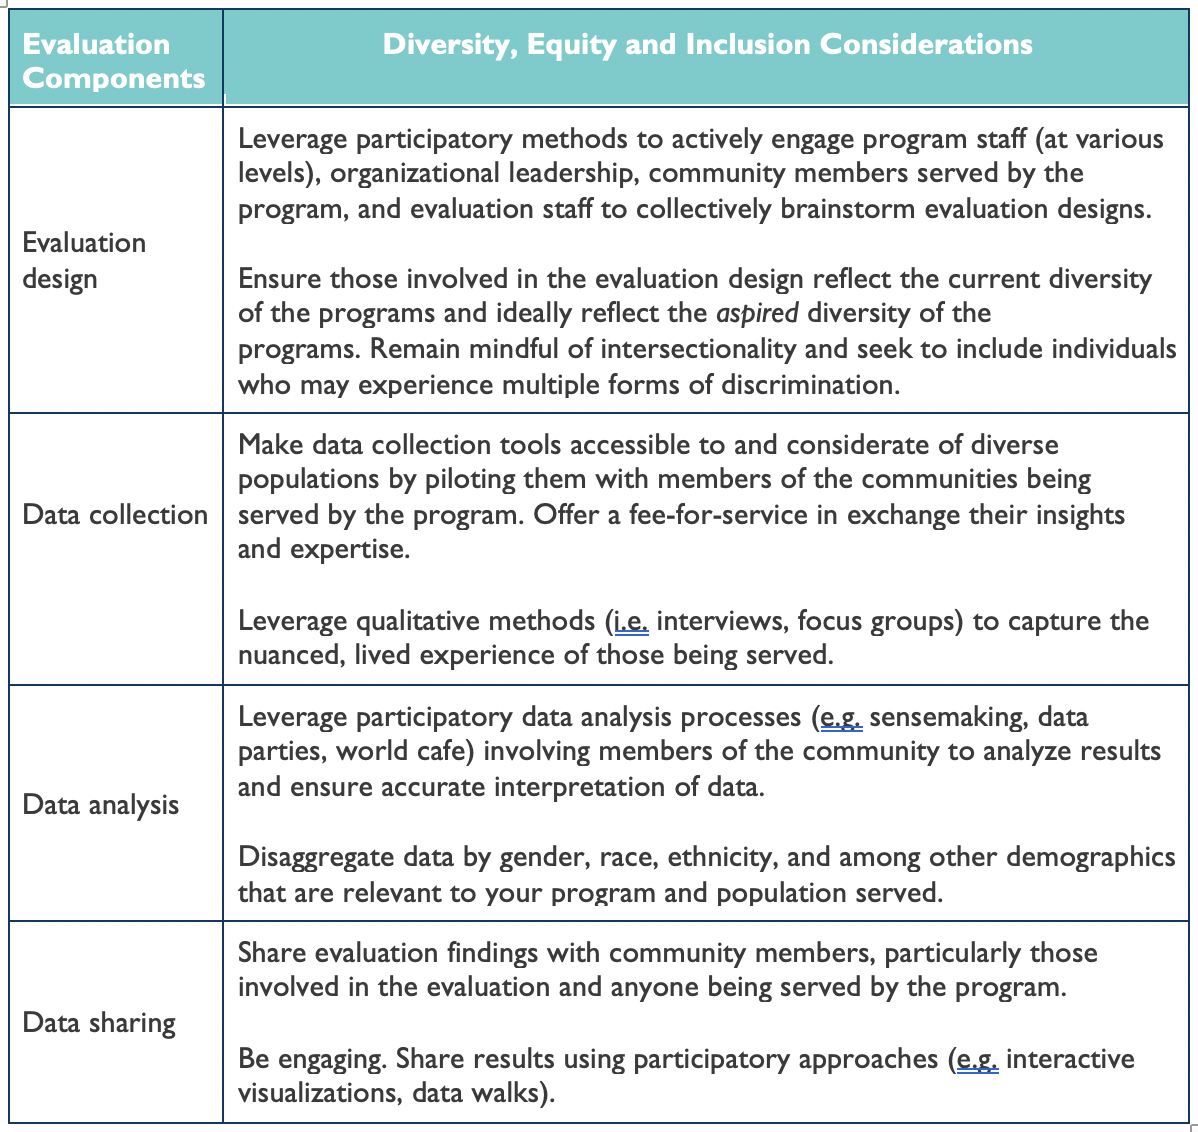 Table of evaluation components and Diversity, Equity and Inclusion Considerations